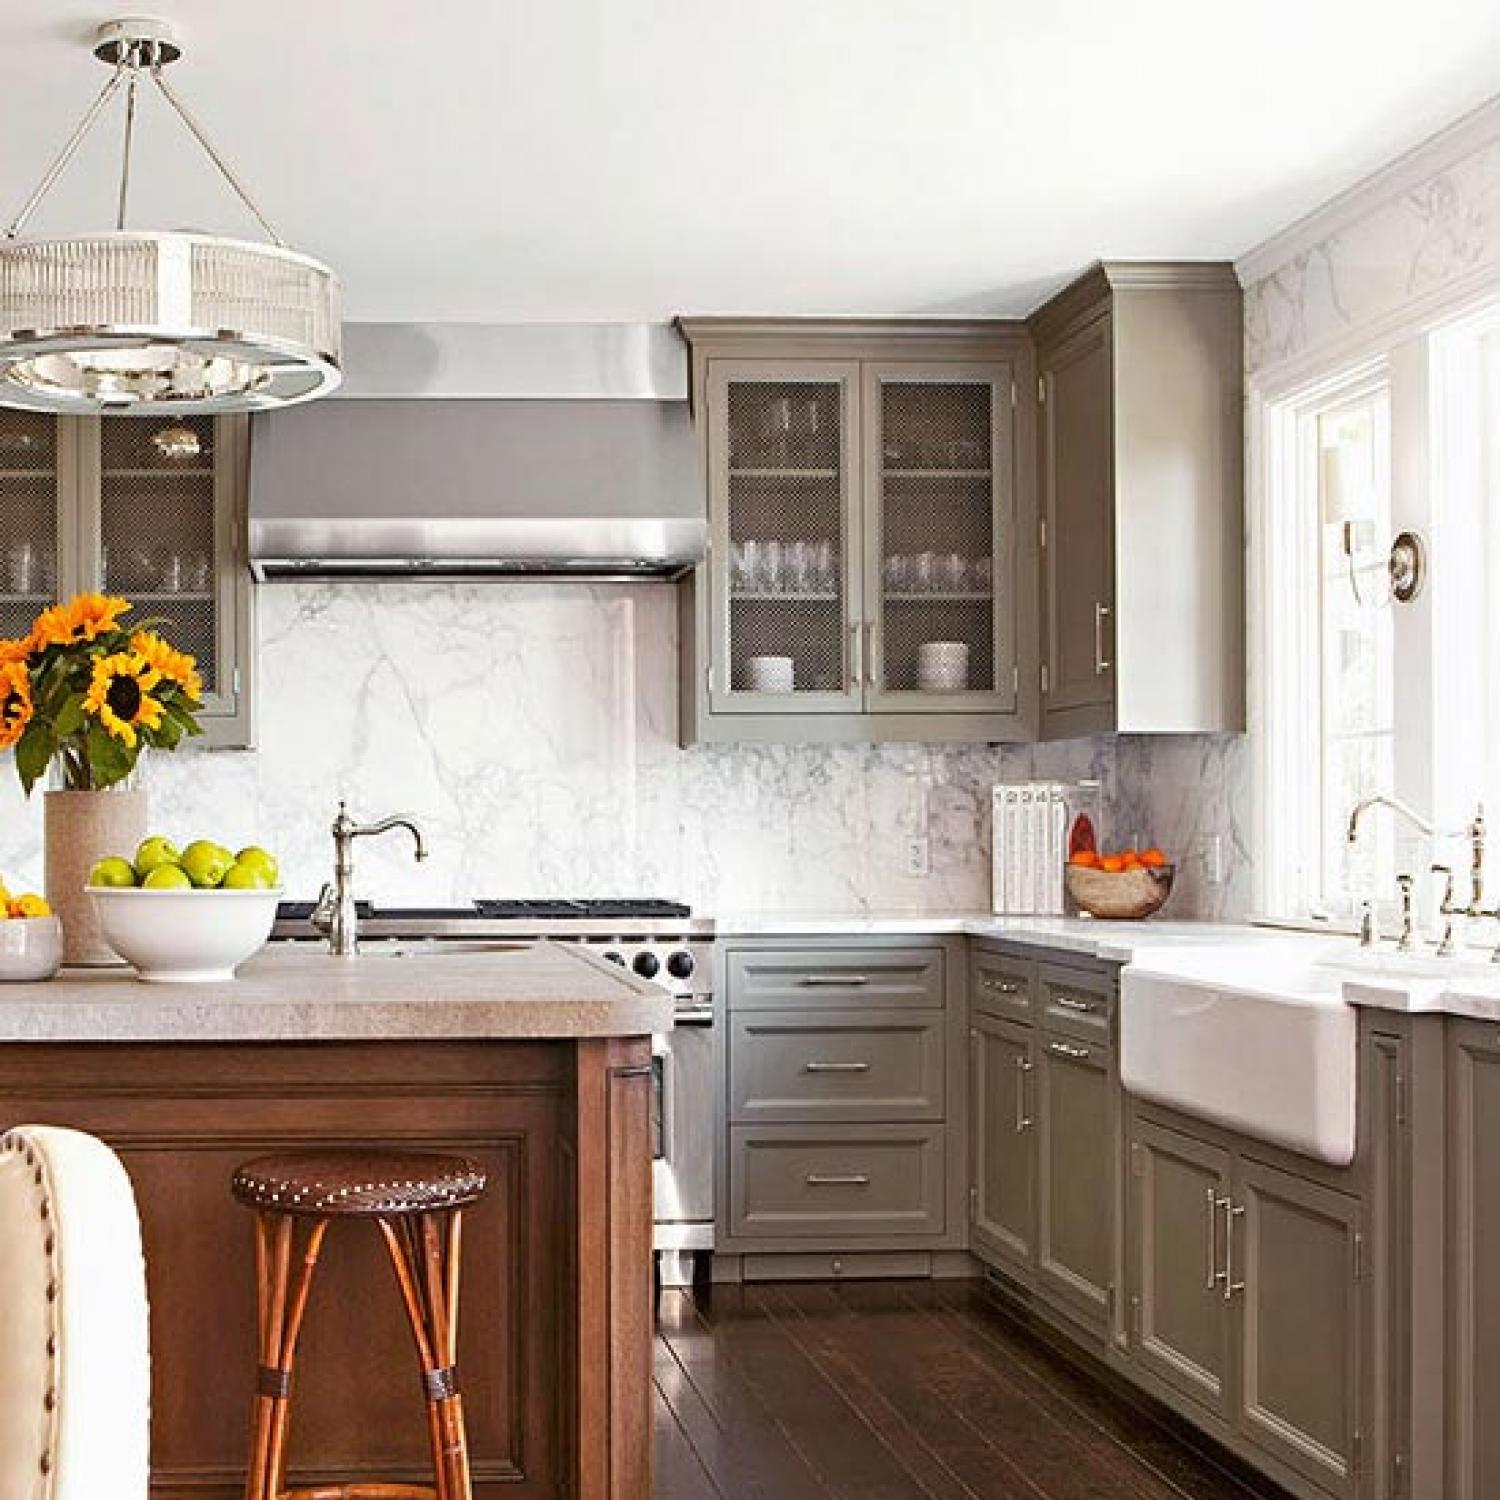 Traditional Kitchen Lighting Ideas Pictures: Kitchens: Relaxed And Refined